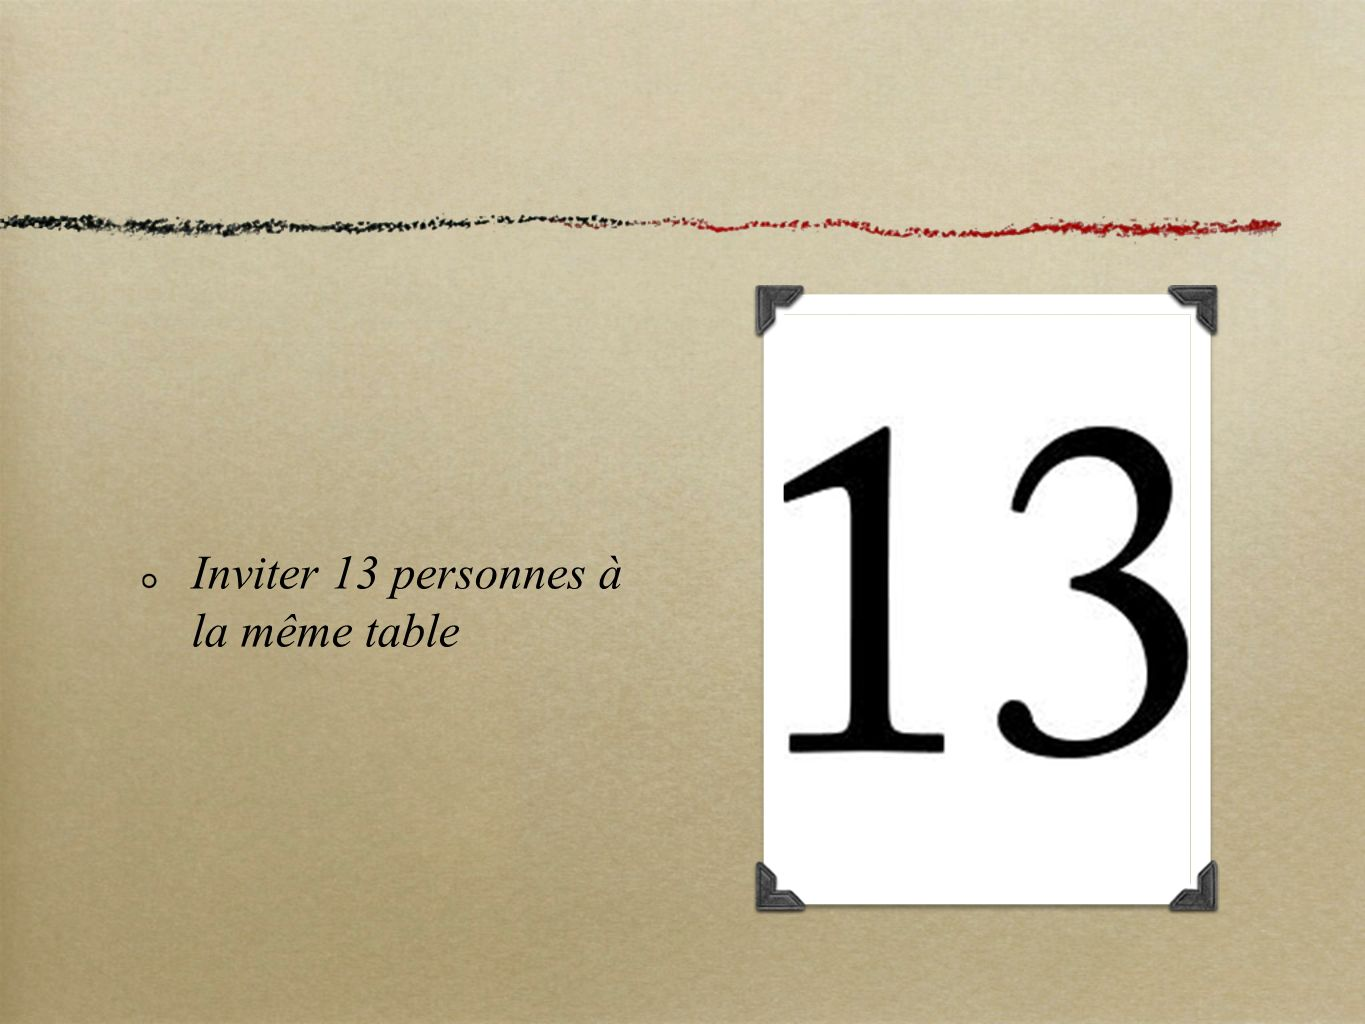 Inviter 13 personnes à la même table